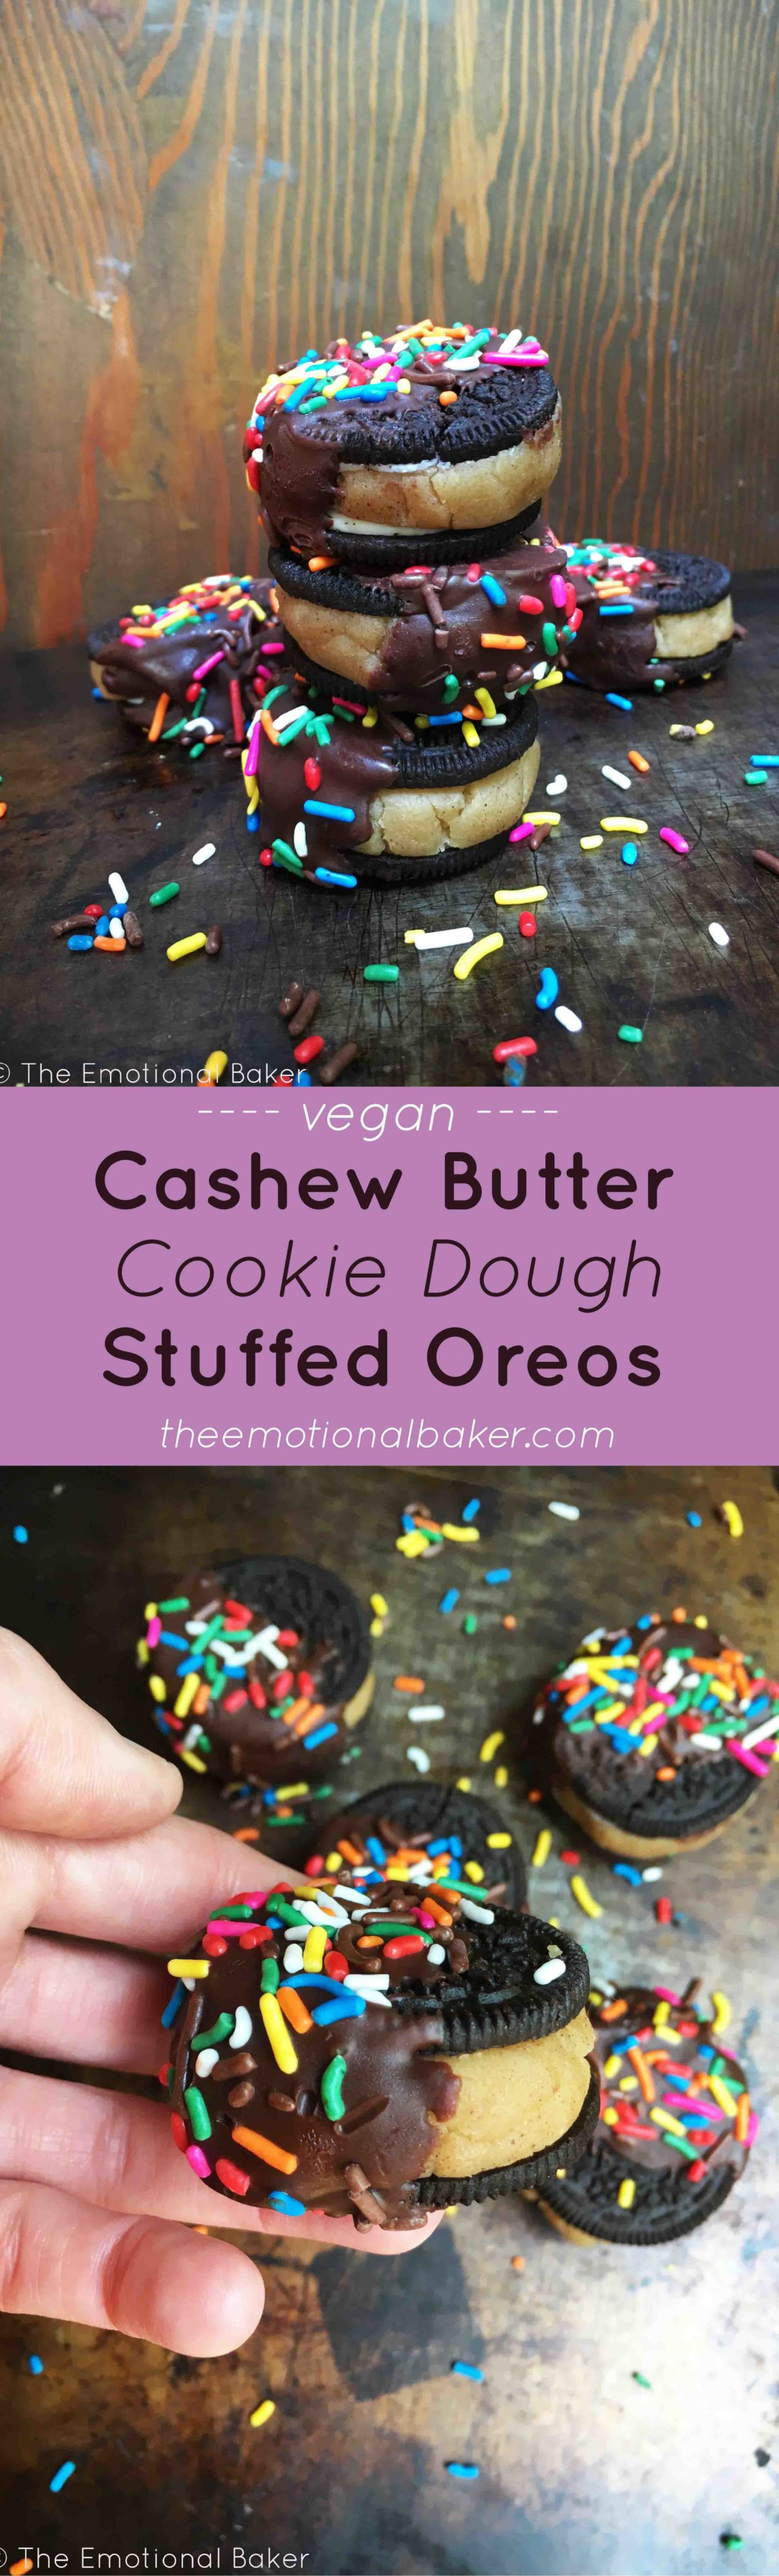 Cashew Butter Cookie Dough Stuffed Oreos